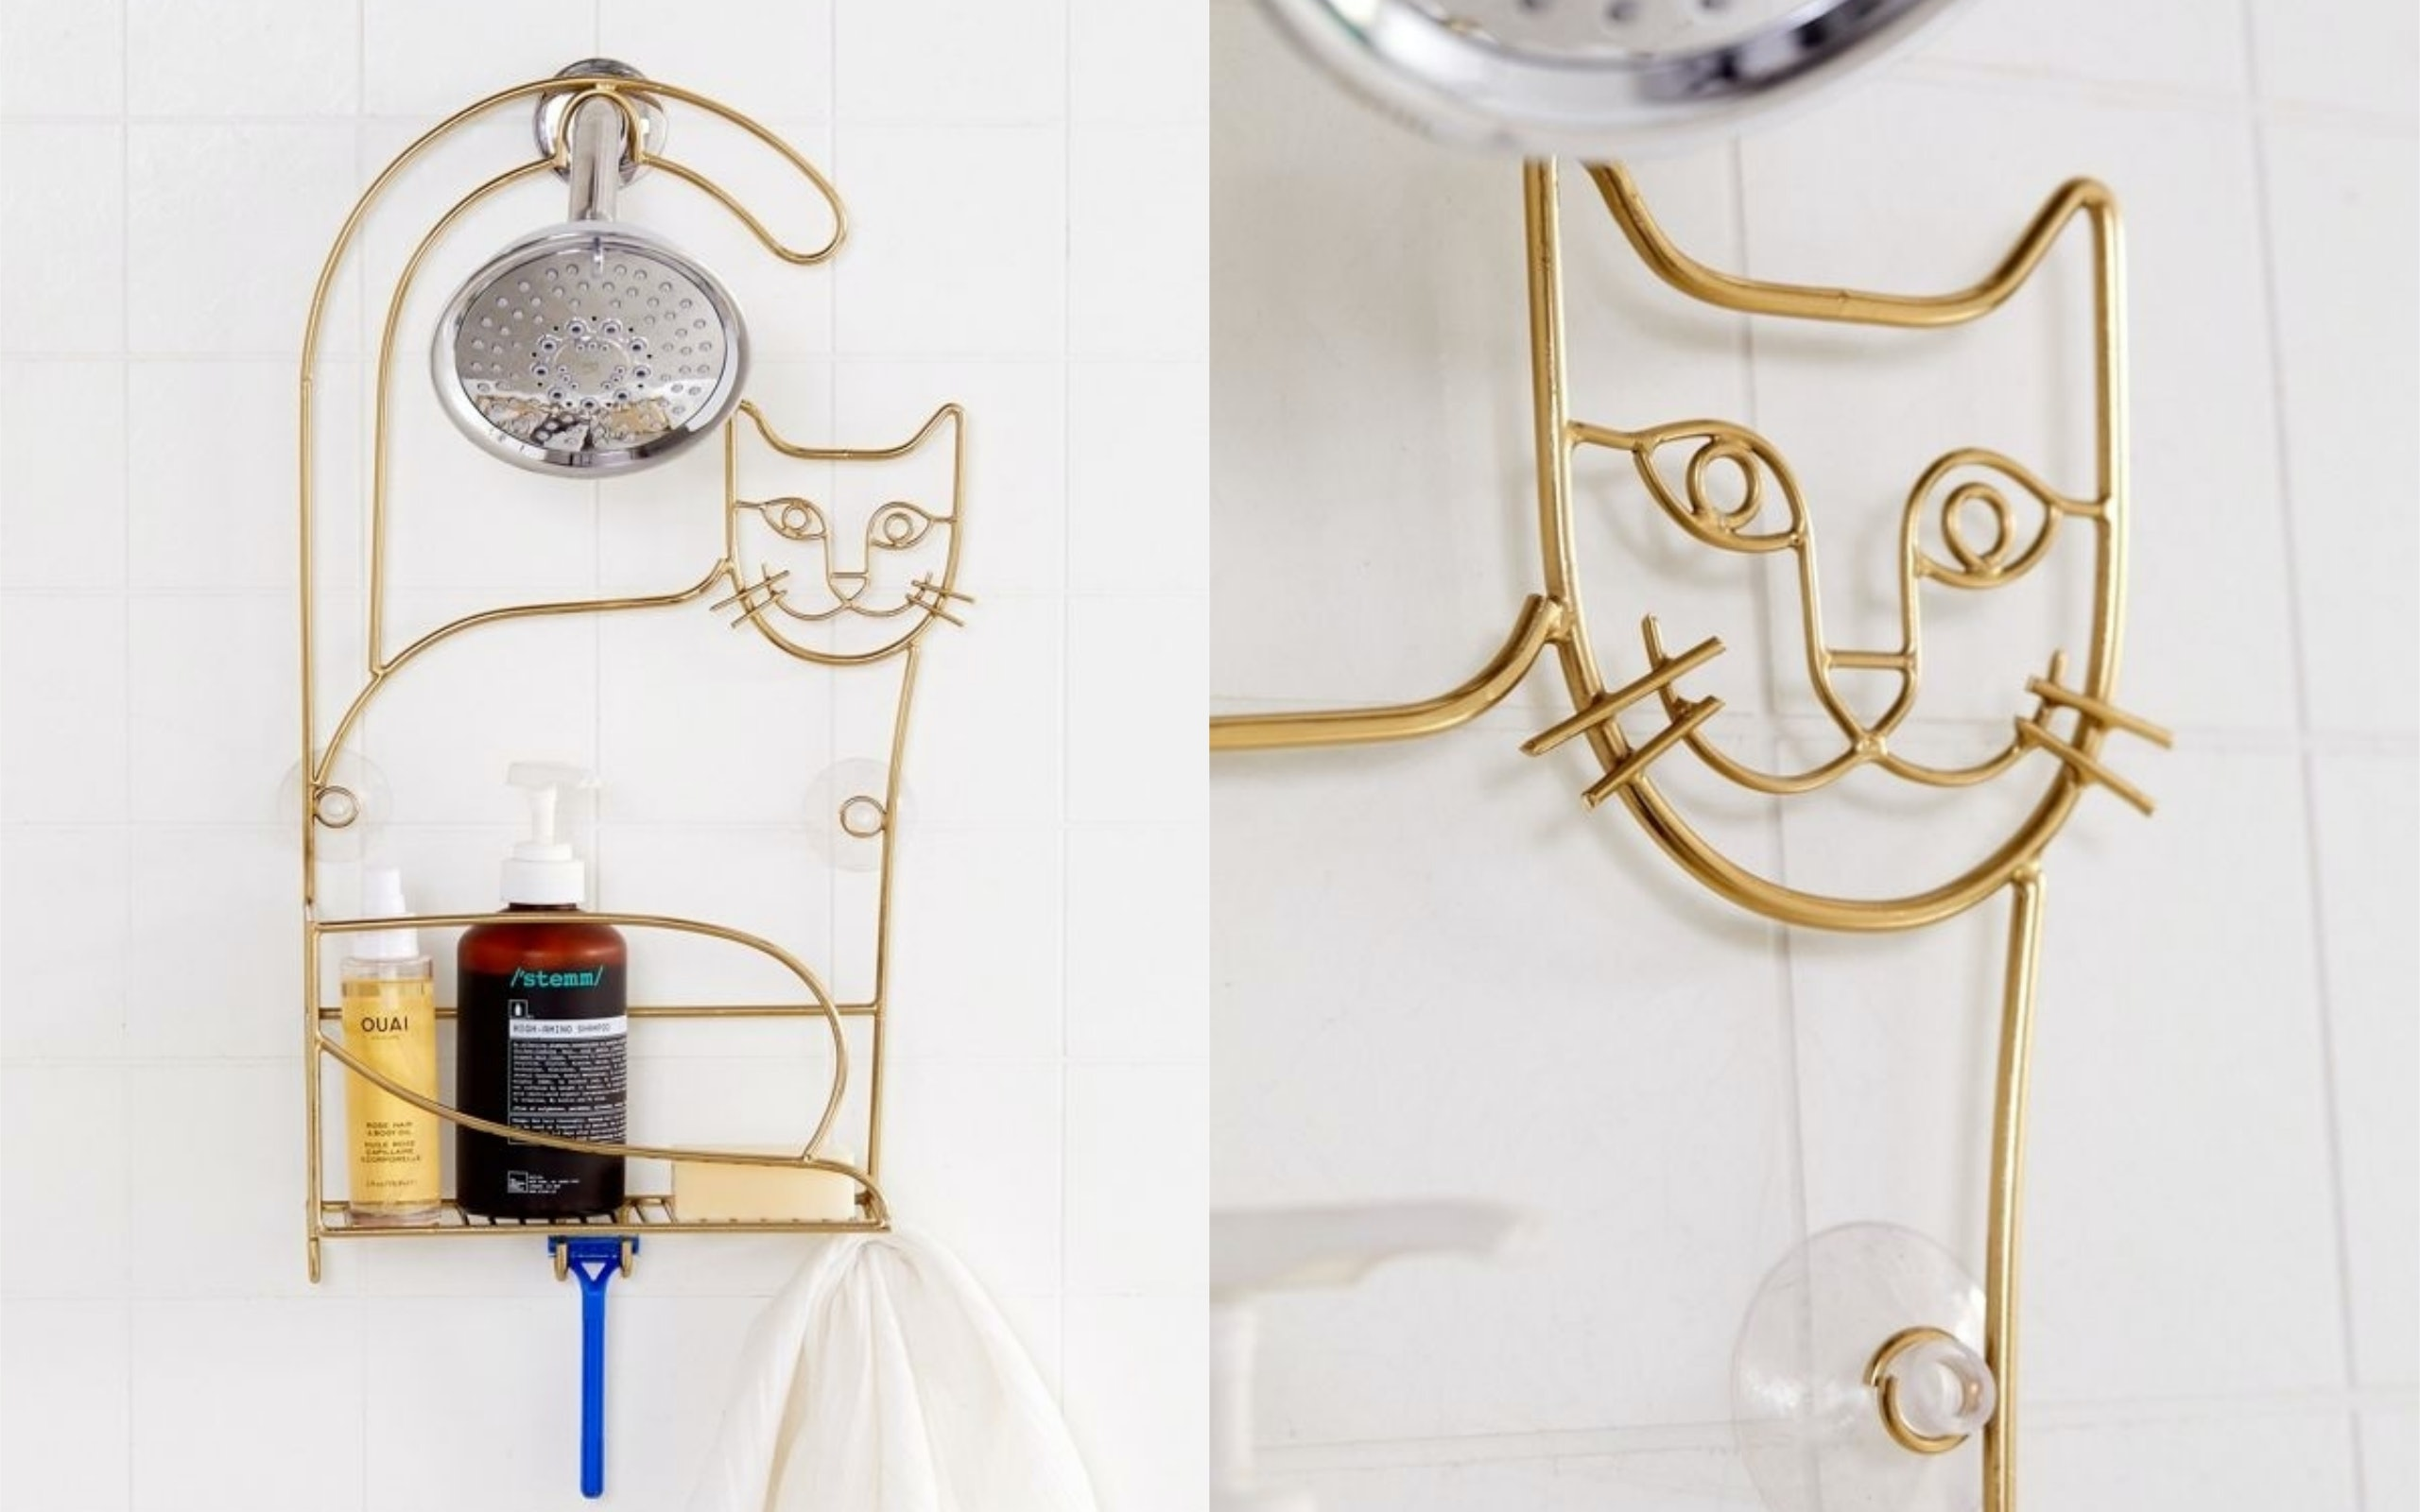 This Cat Shower Caddy From Urban Outfitters Will Bring Joy